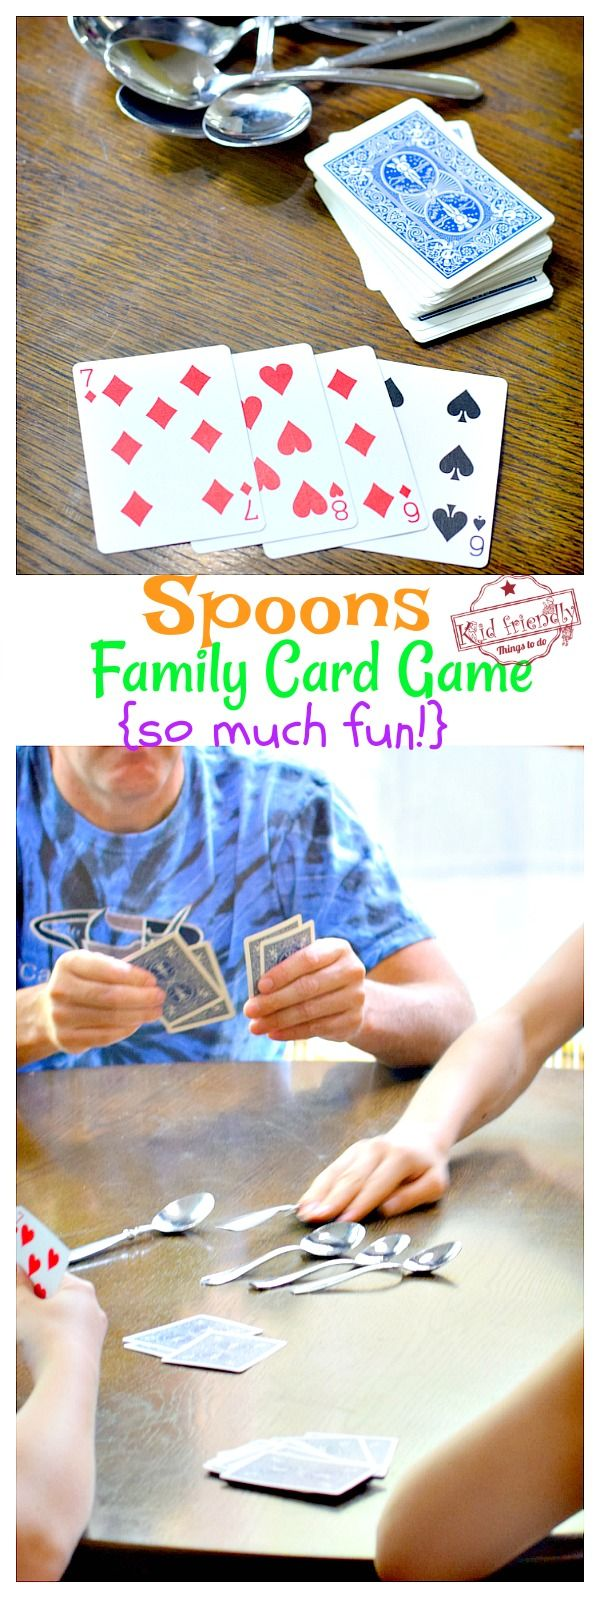 How To Play Spoons Card Game Fun For All Ages With Video Kid Friendly Things To Do How To Play Spoons Fun Card Games Card Games For Kids